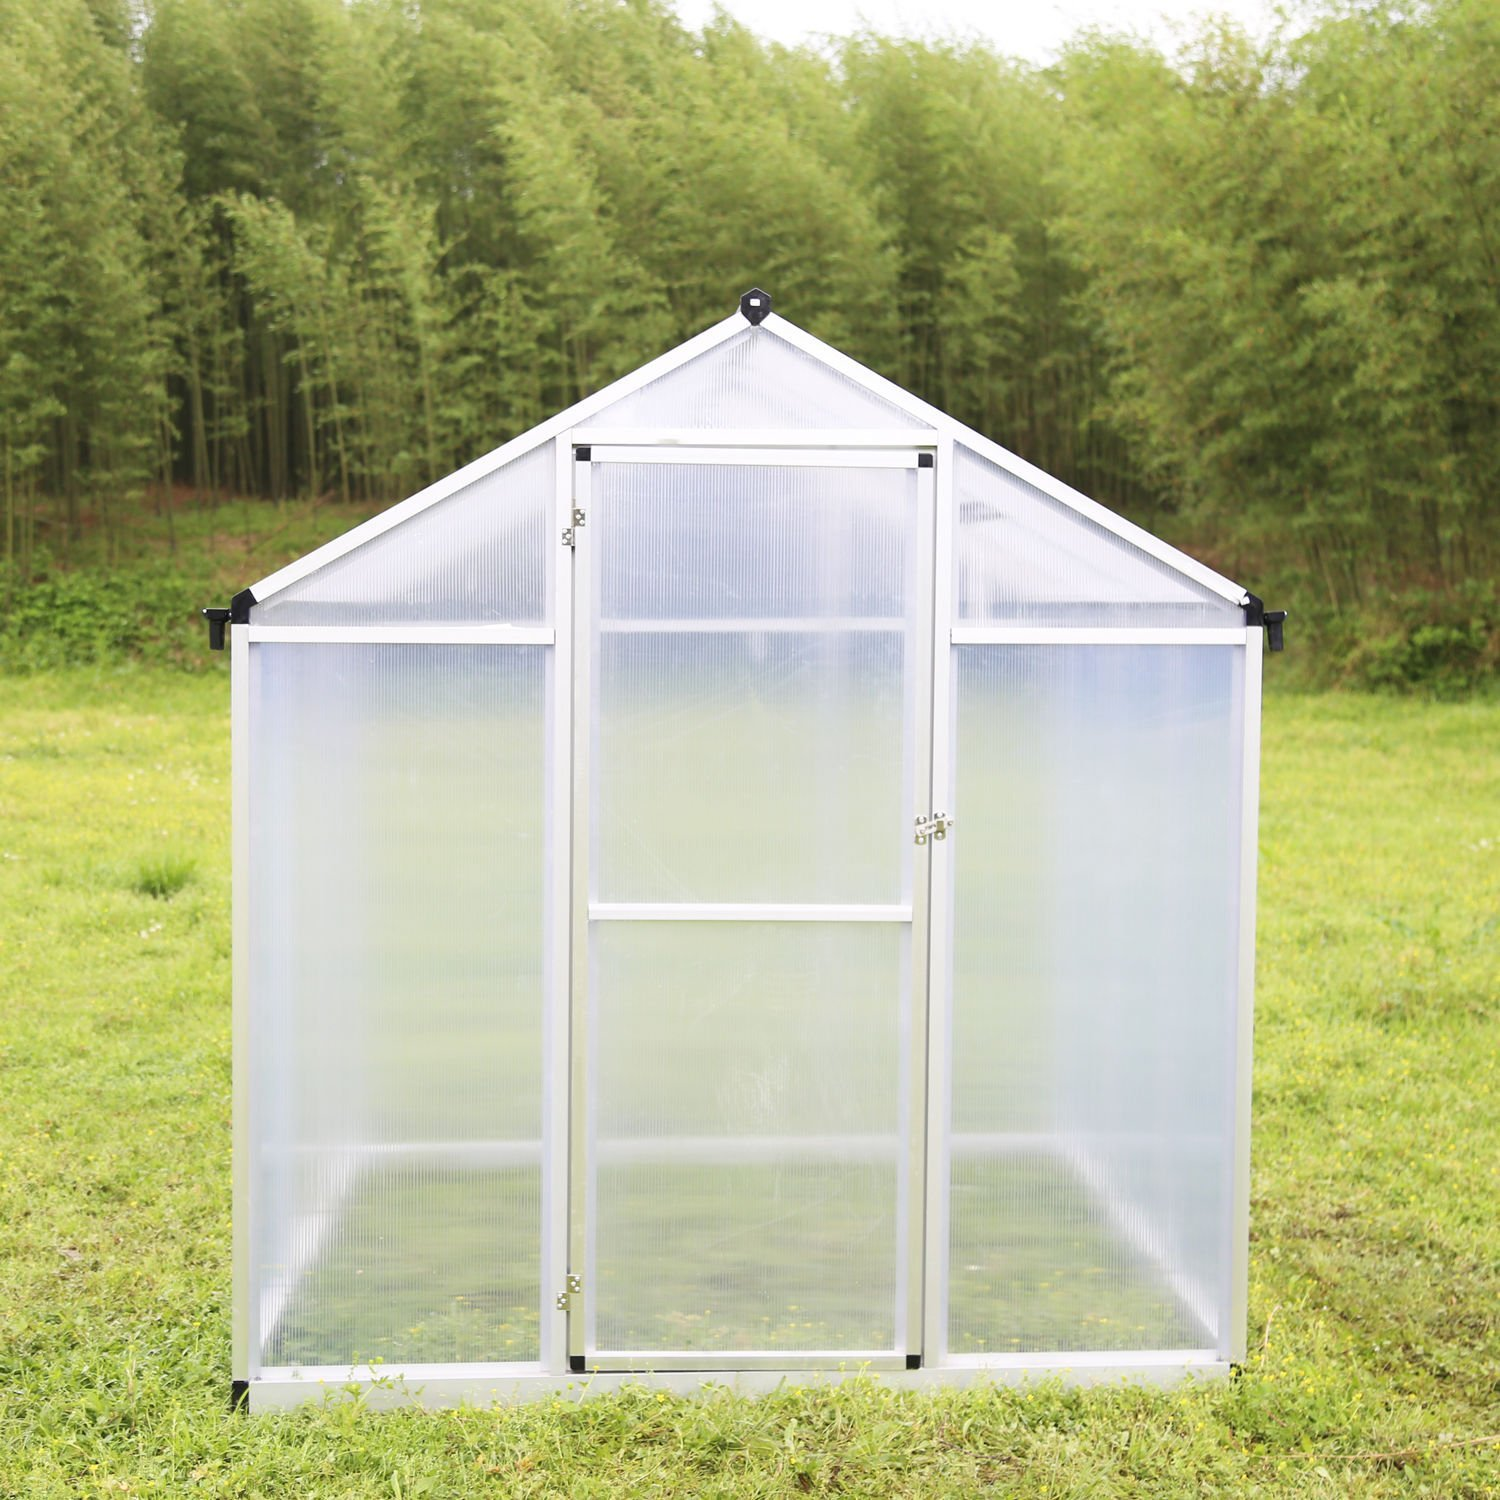 New MTN-G 6'x6' Walk In Greenhouse Heavy Duty Polycarbonate Outdoor Plant Green House Kits